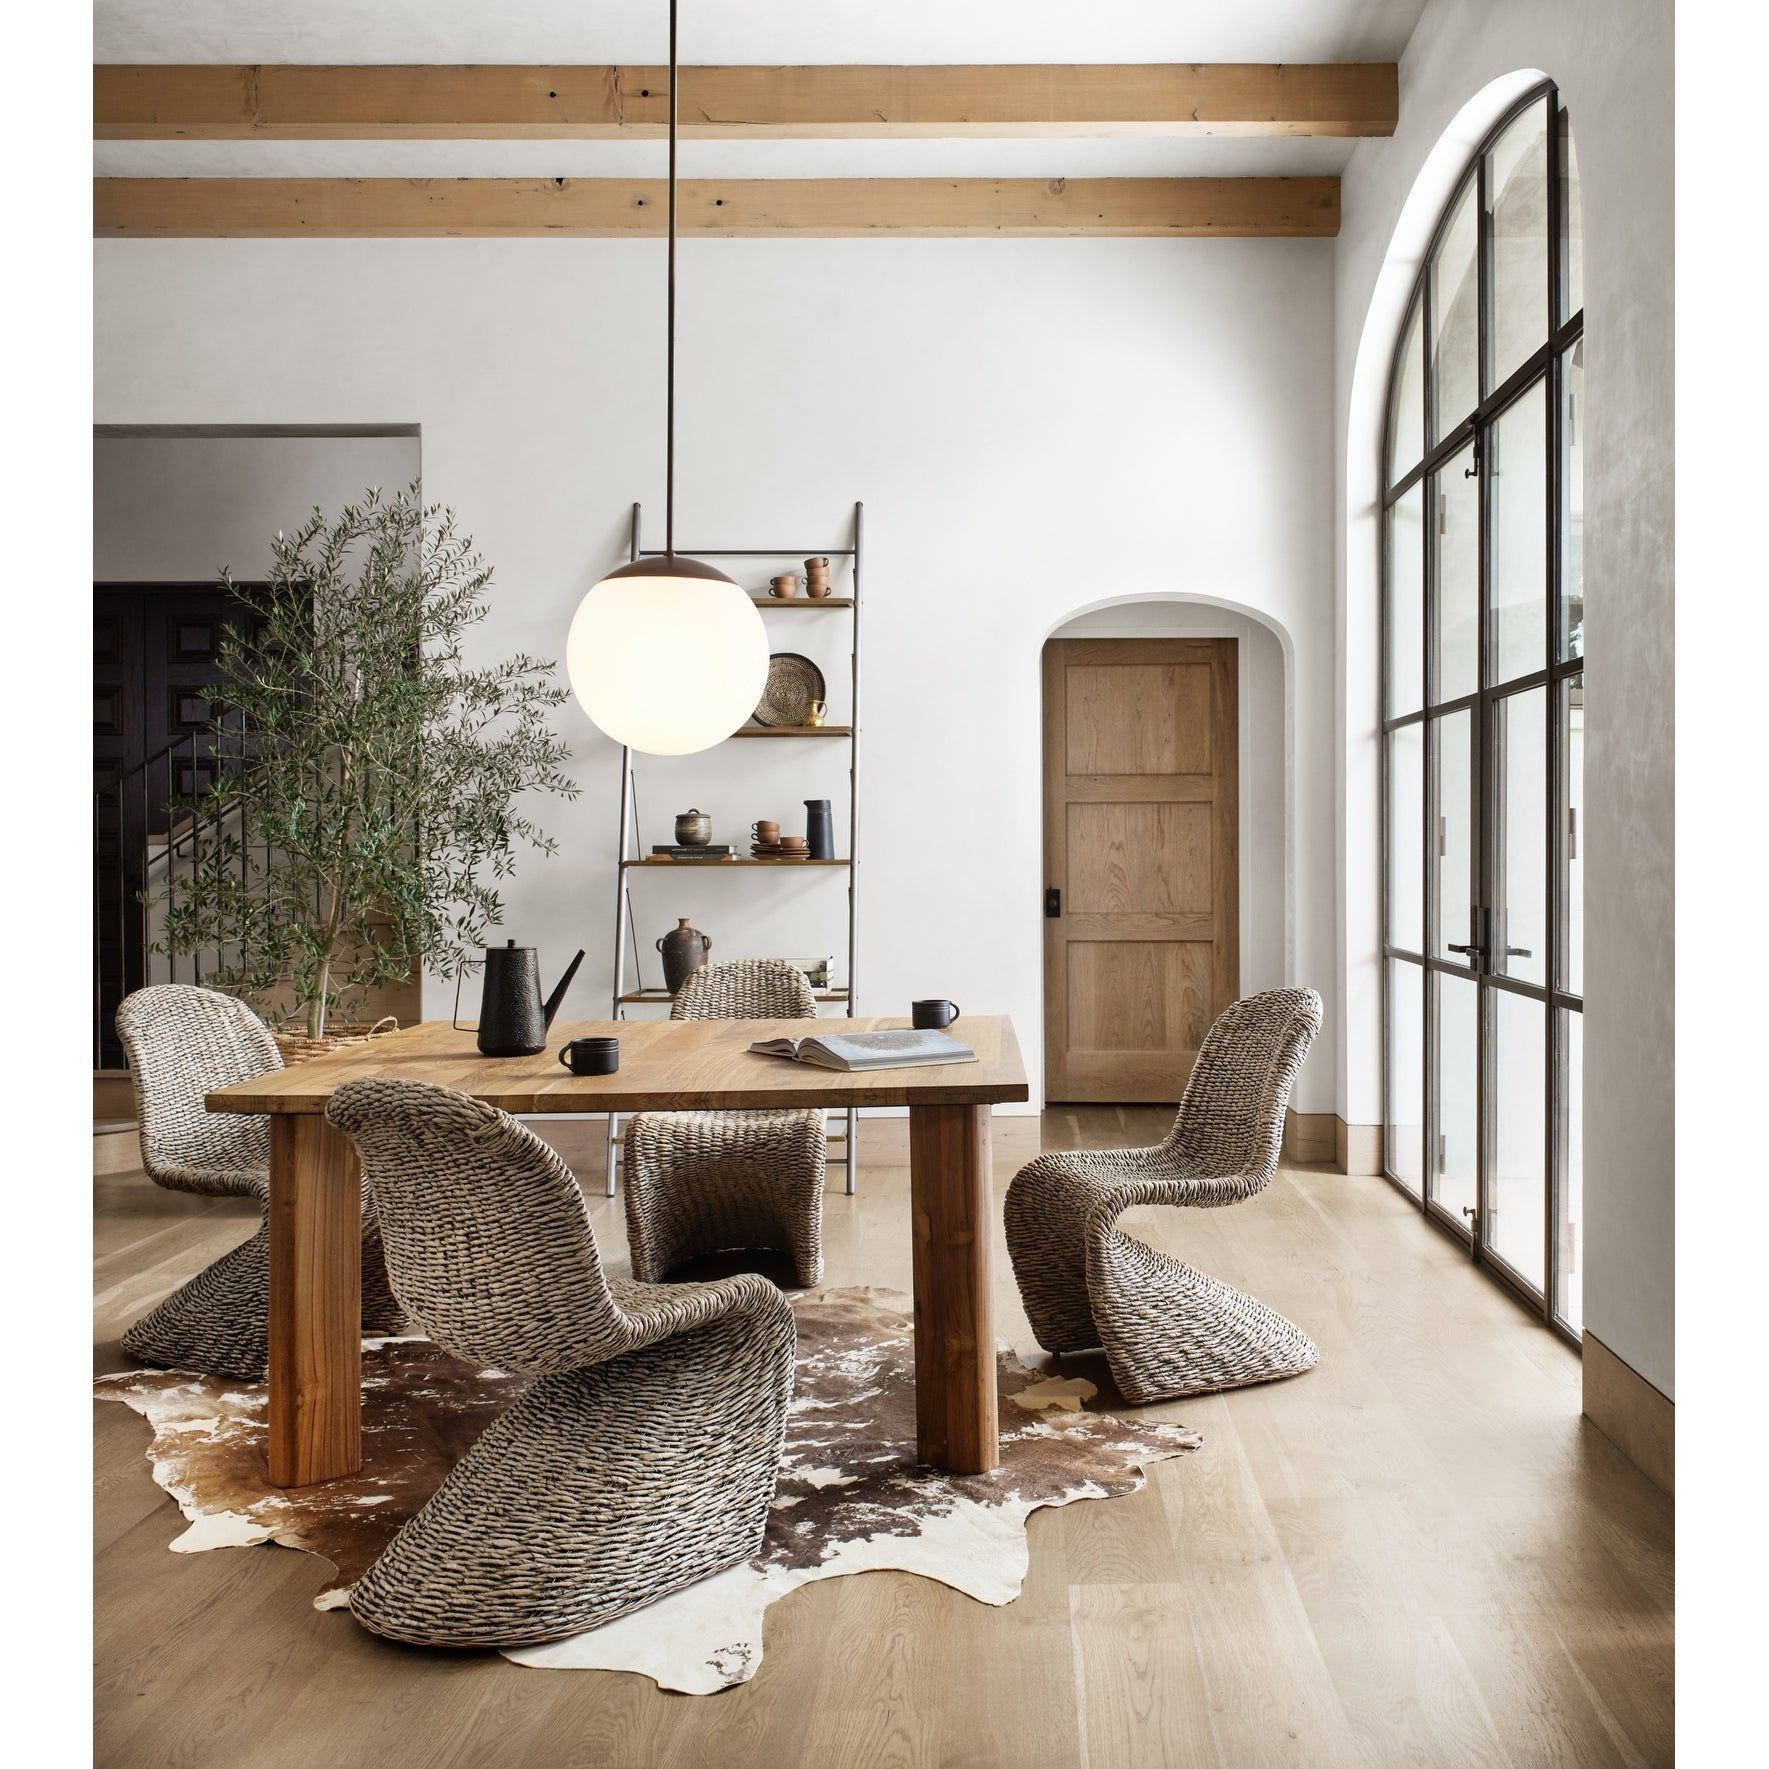 wicker dining chair, affordable dining chairs, boho dining chairs, boho dining chair inspiration, simple dining chairs, rustic dining chairs, rattan dining chair inspiration, wicker dining chair inspiration, dining chairs inspiration, dining room inspiration, dining room ideas, dining room table styling ideas